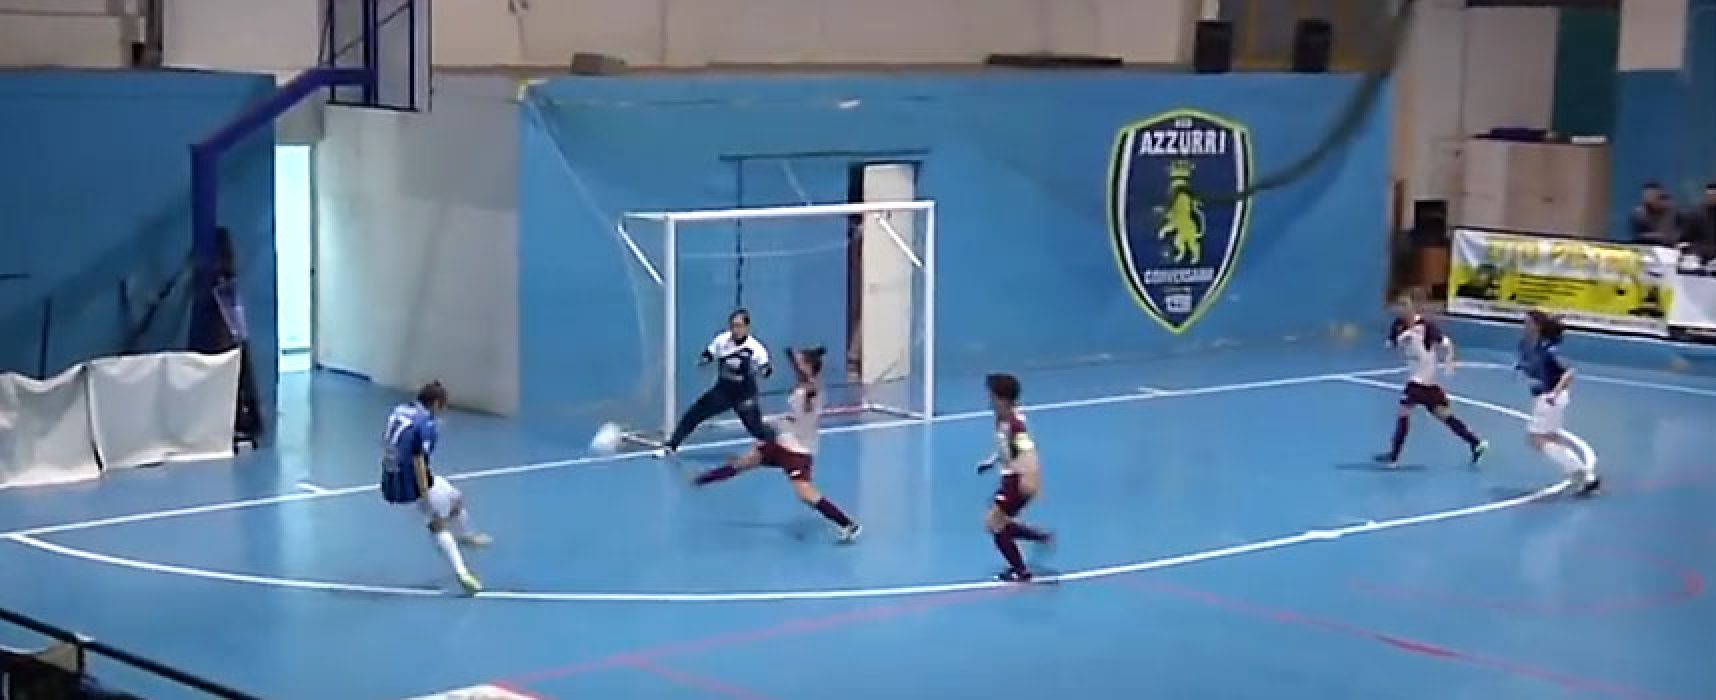 Conversano-Bisceglie Femminile 1-5 / VIDEO HIGHLIGHTS